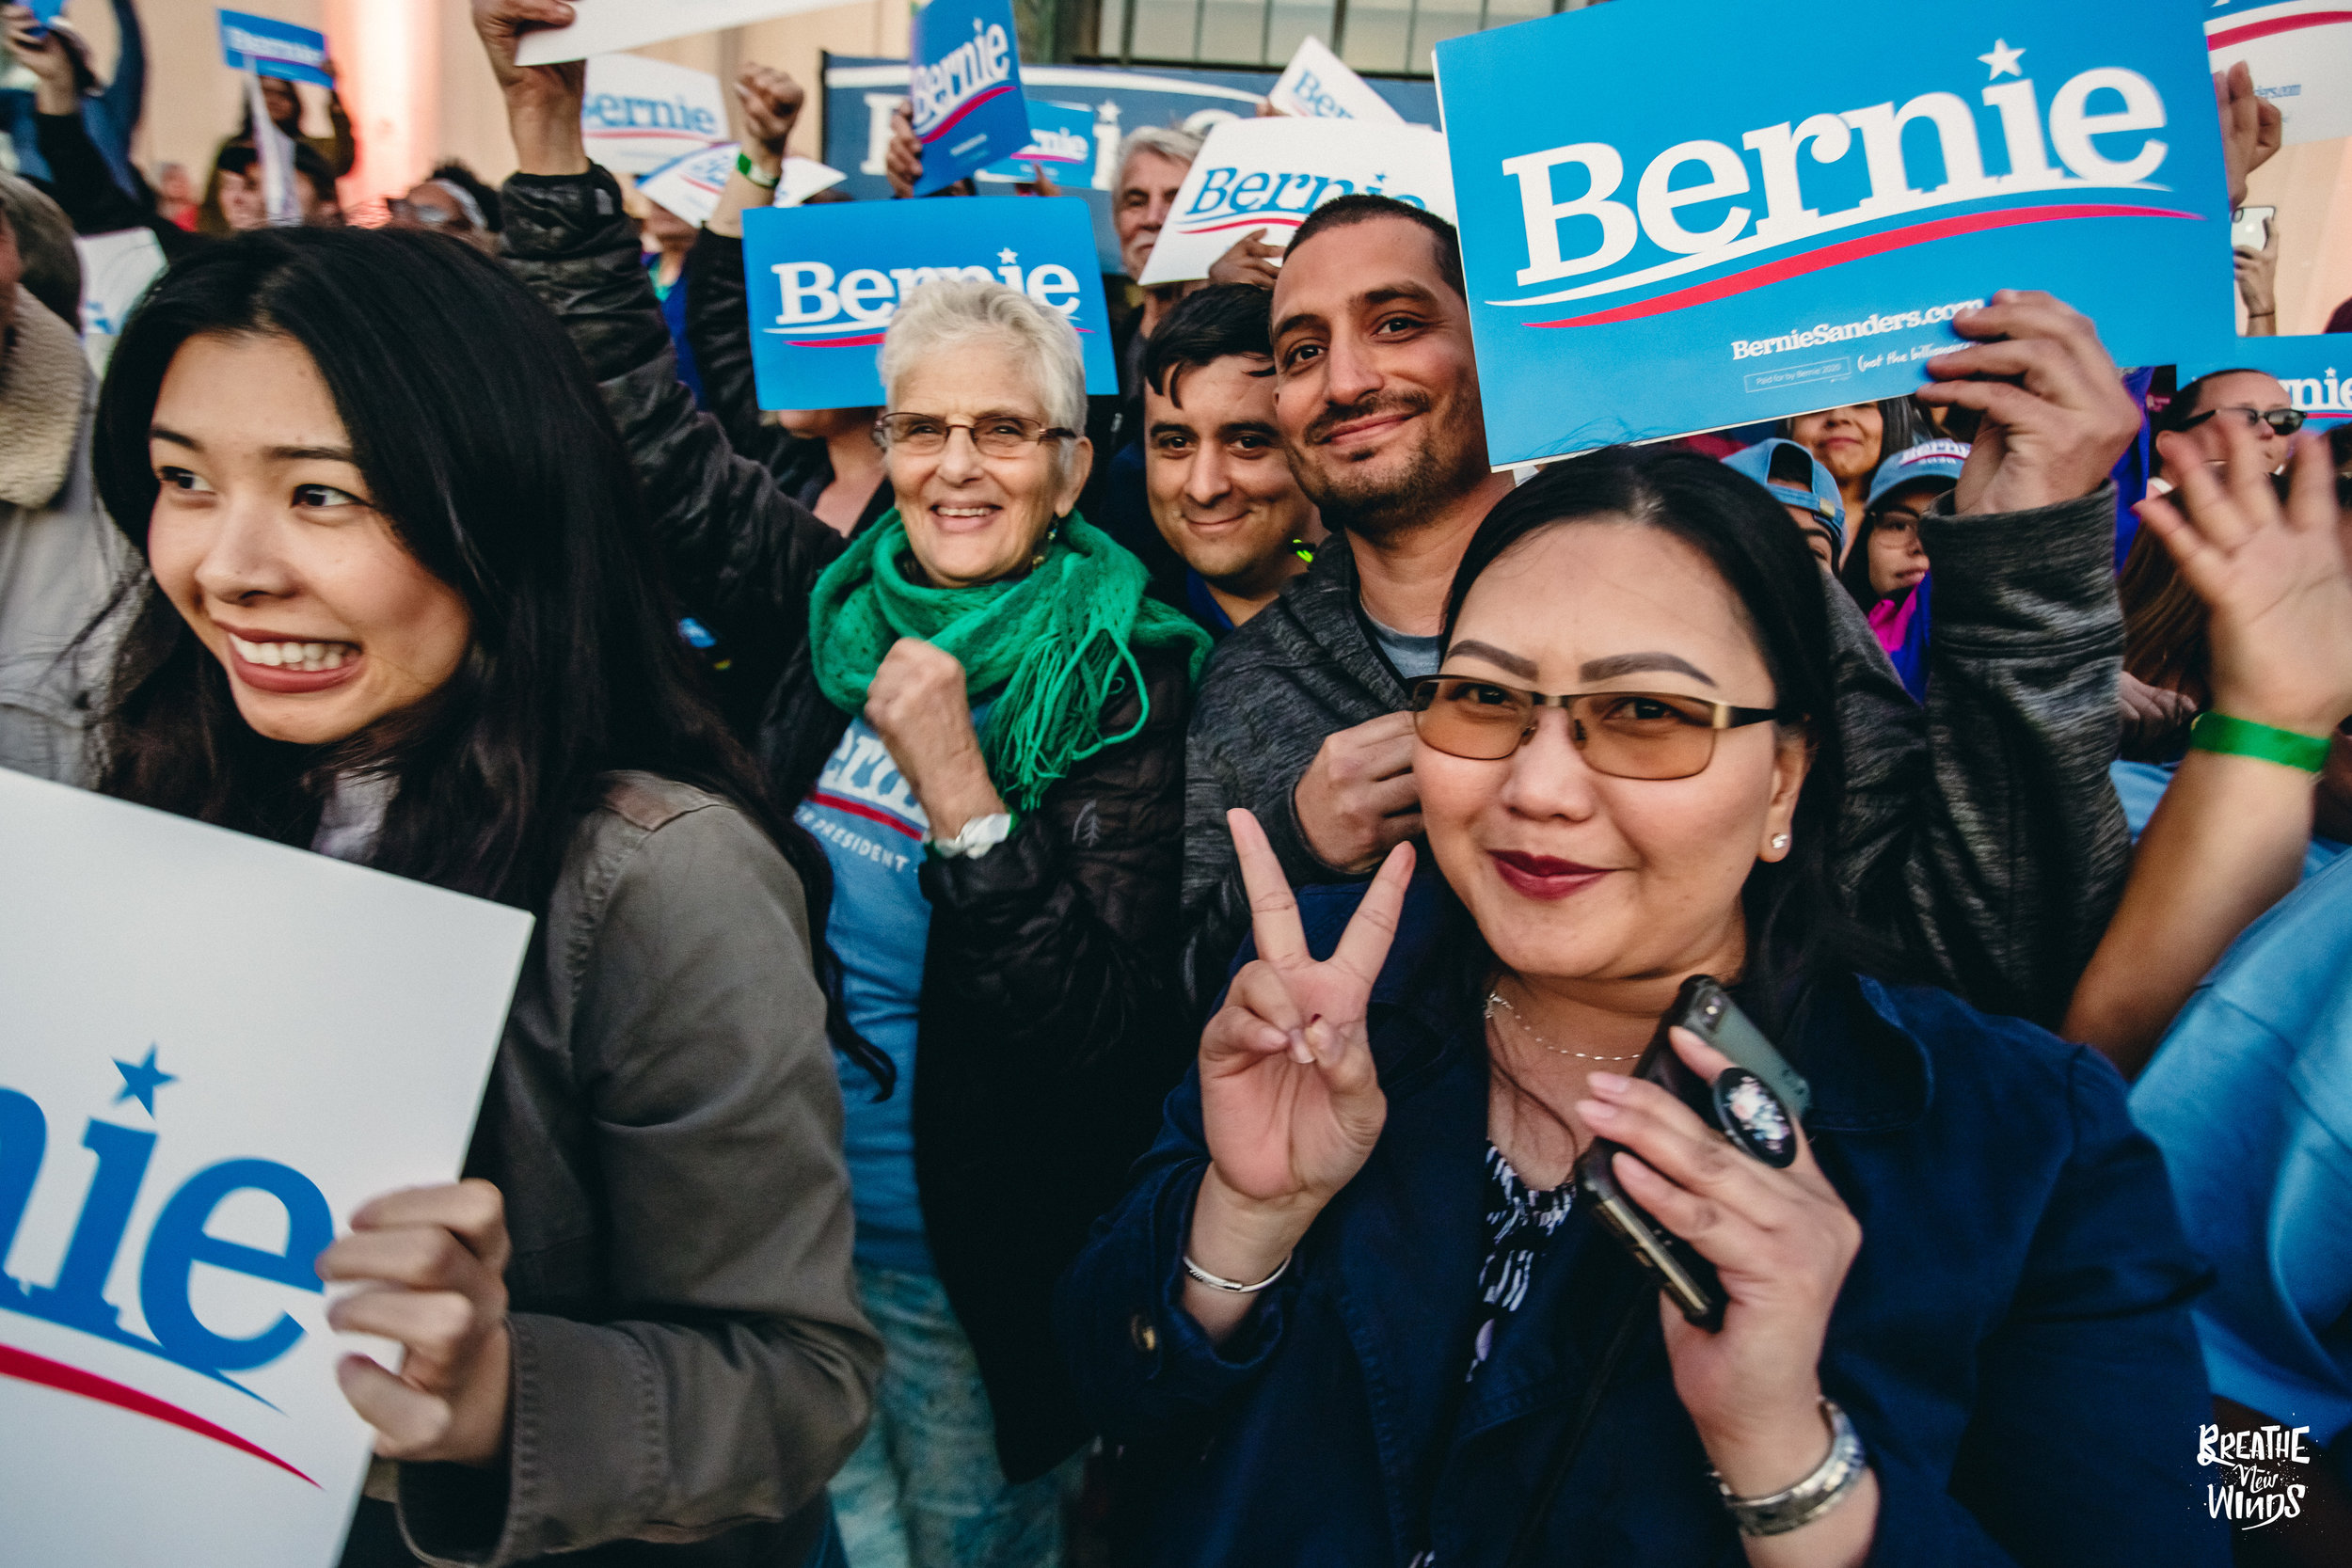 BernieInSD_22March2019-Crowd (88 of 94).jpg